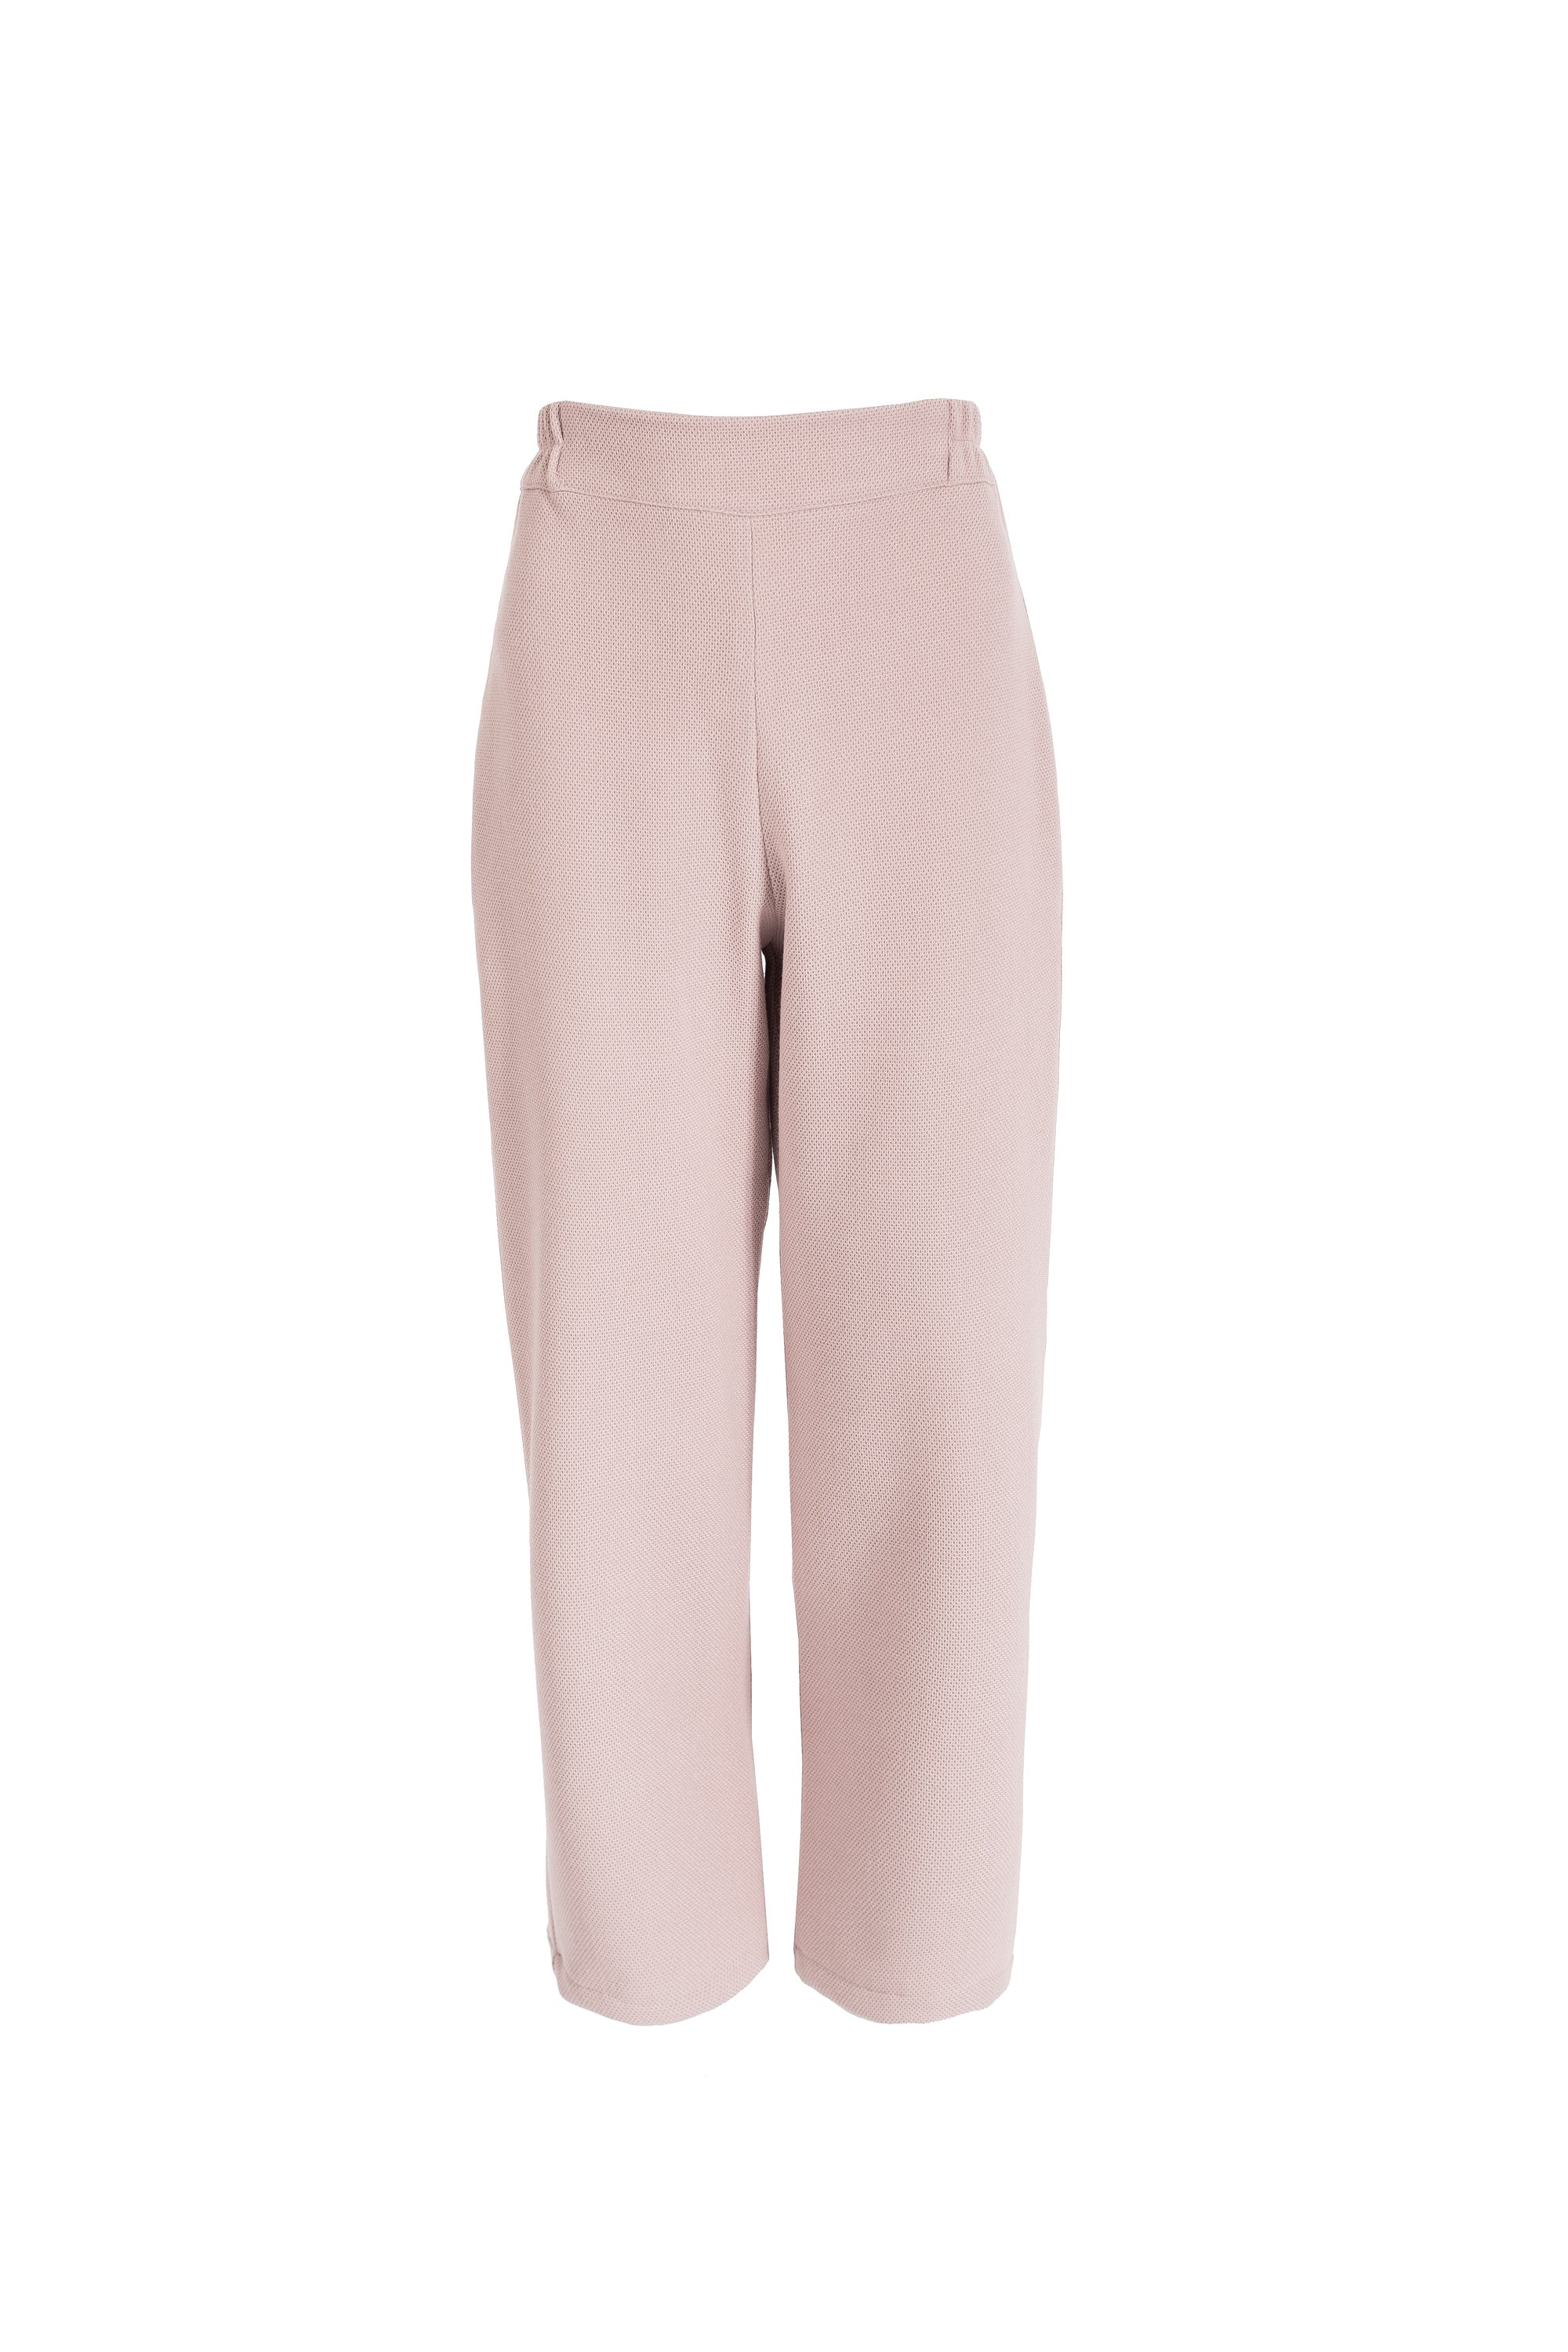 Love | tea rose pants